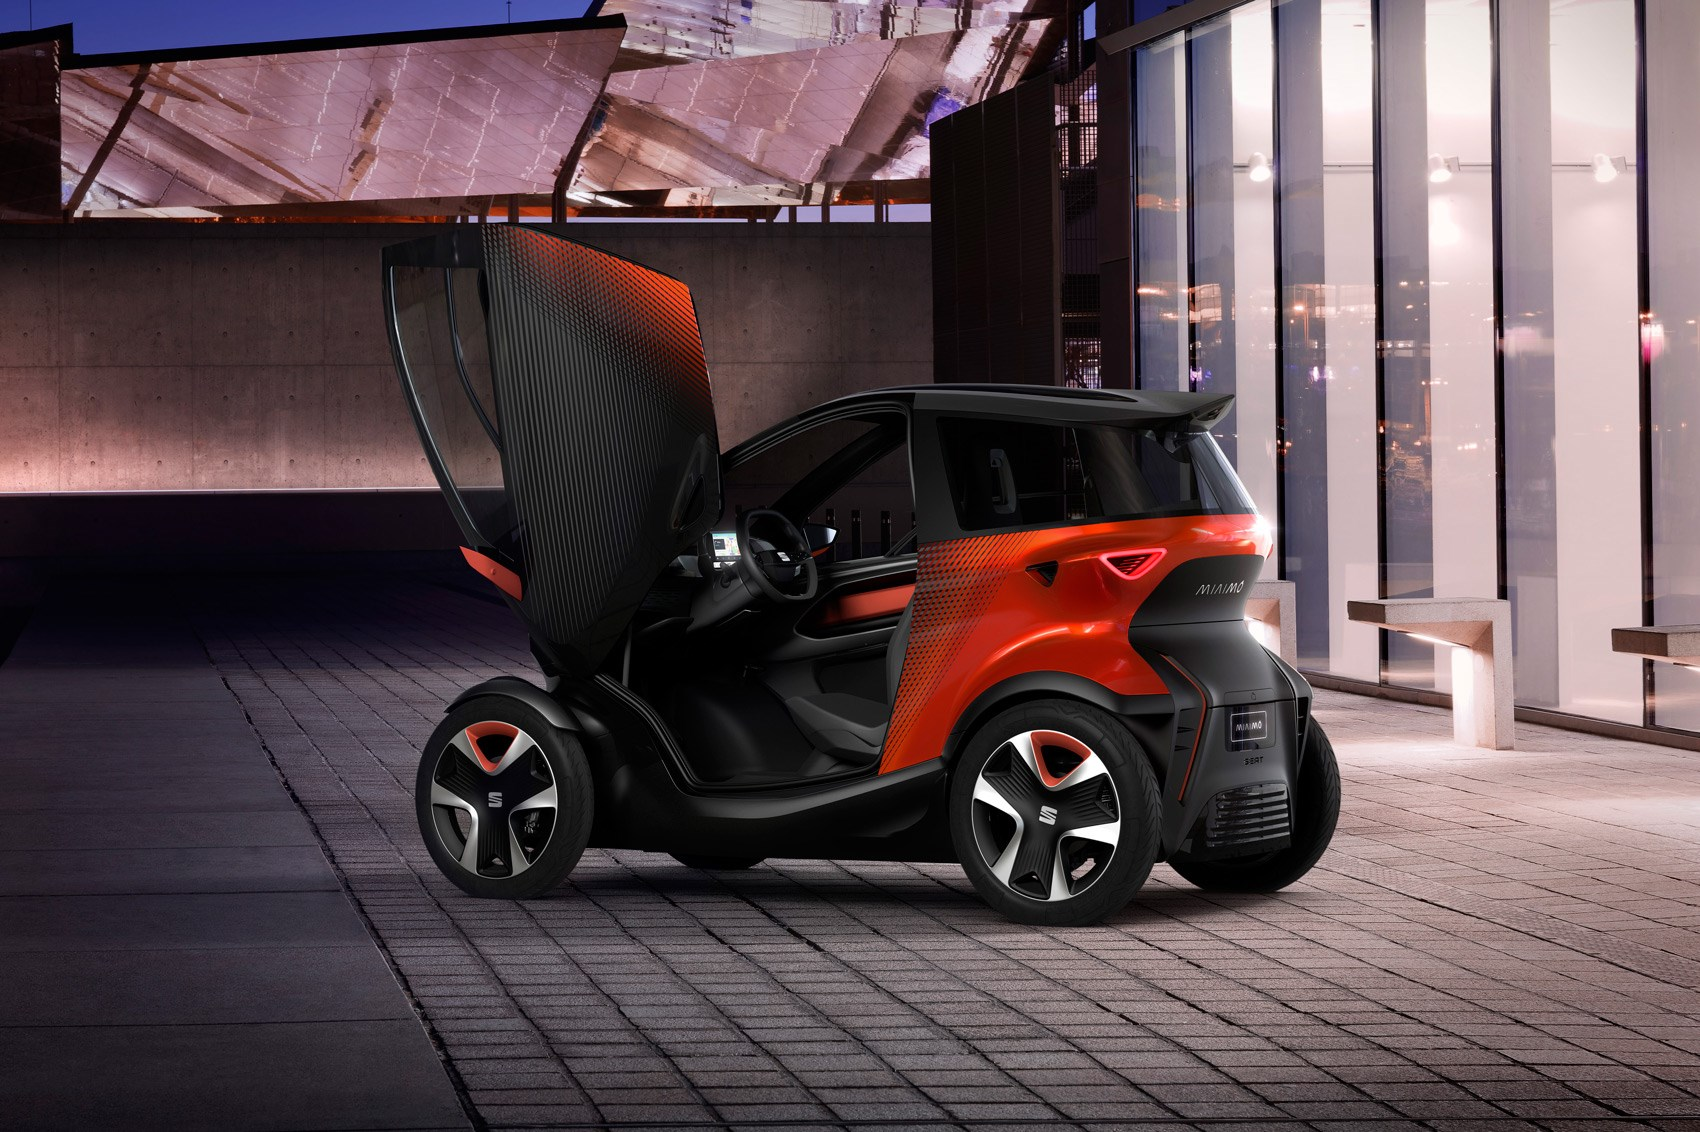 Seat Minimo Could Be Borrowed For 17p Per Kilometre In